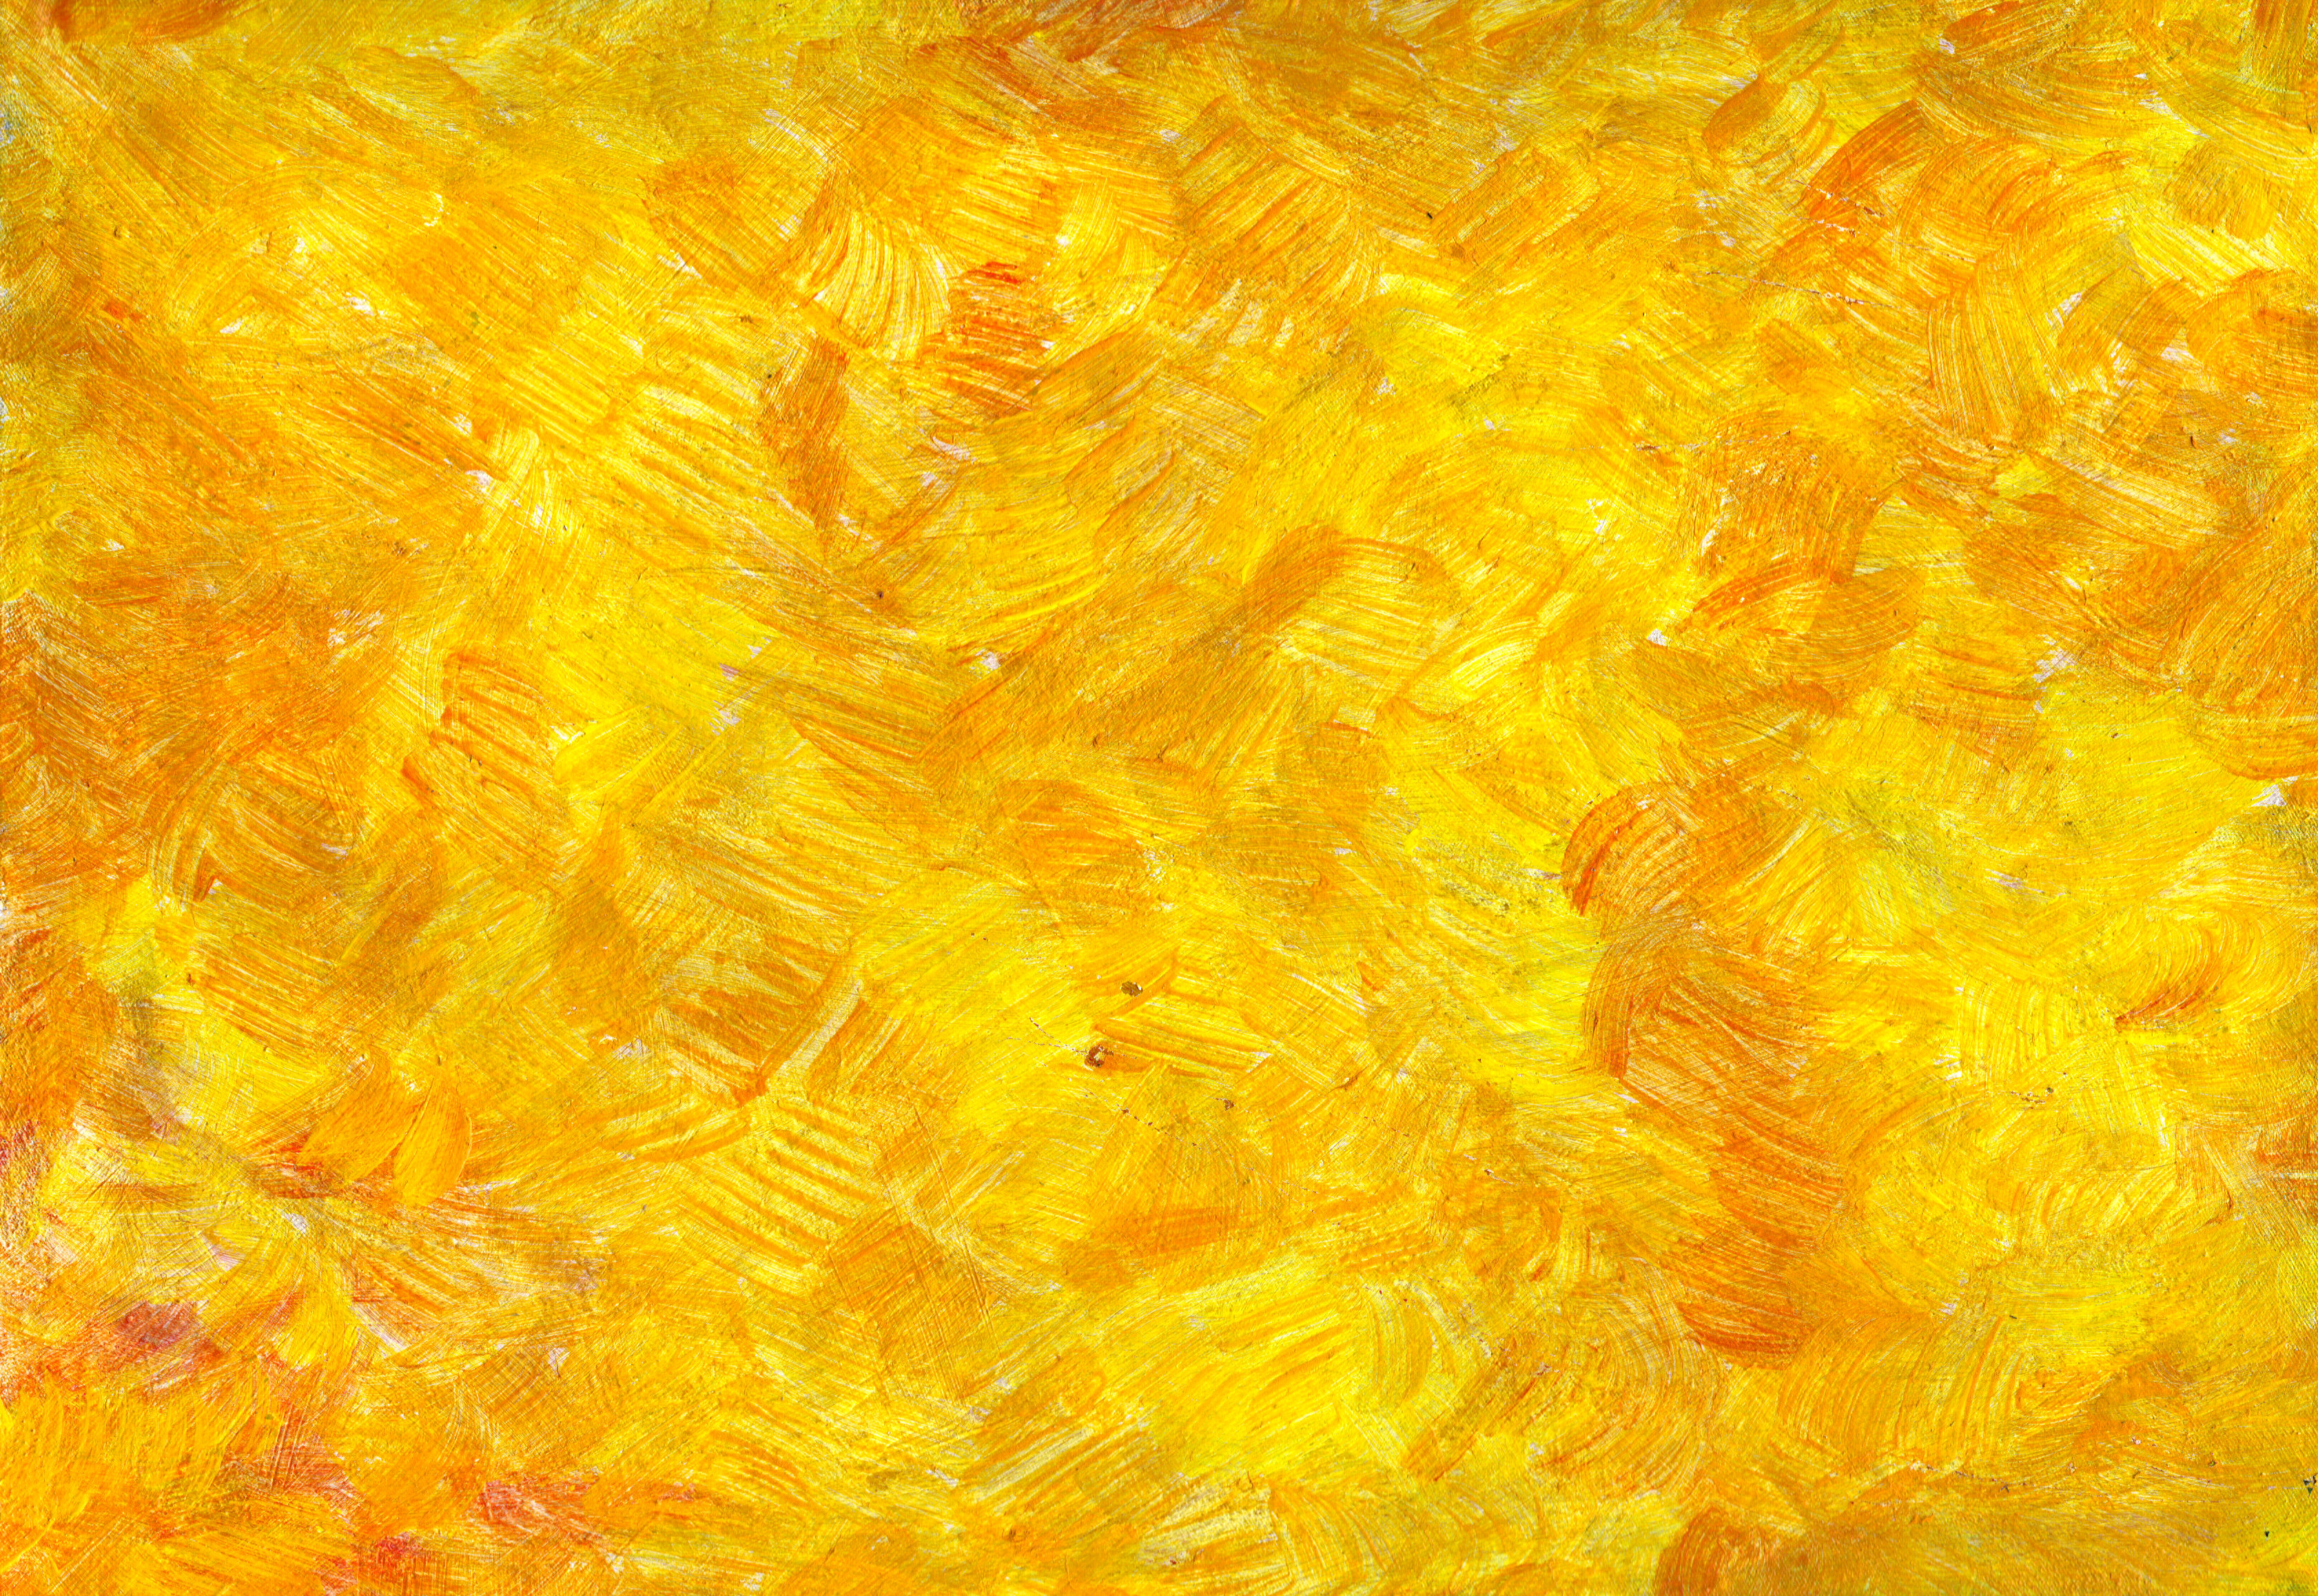 Yellow Orange Paint Texture Jpg Onlygfx Com